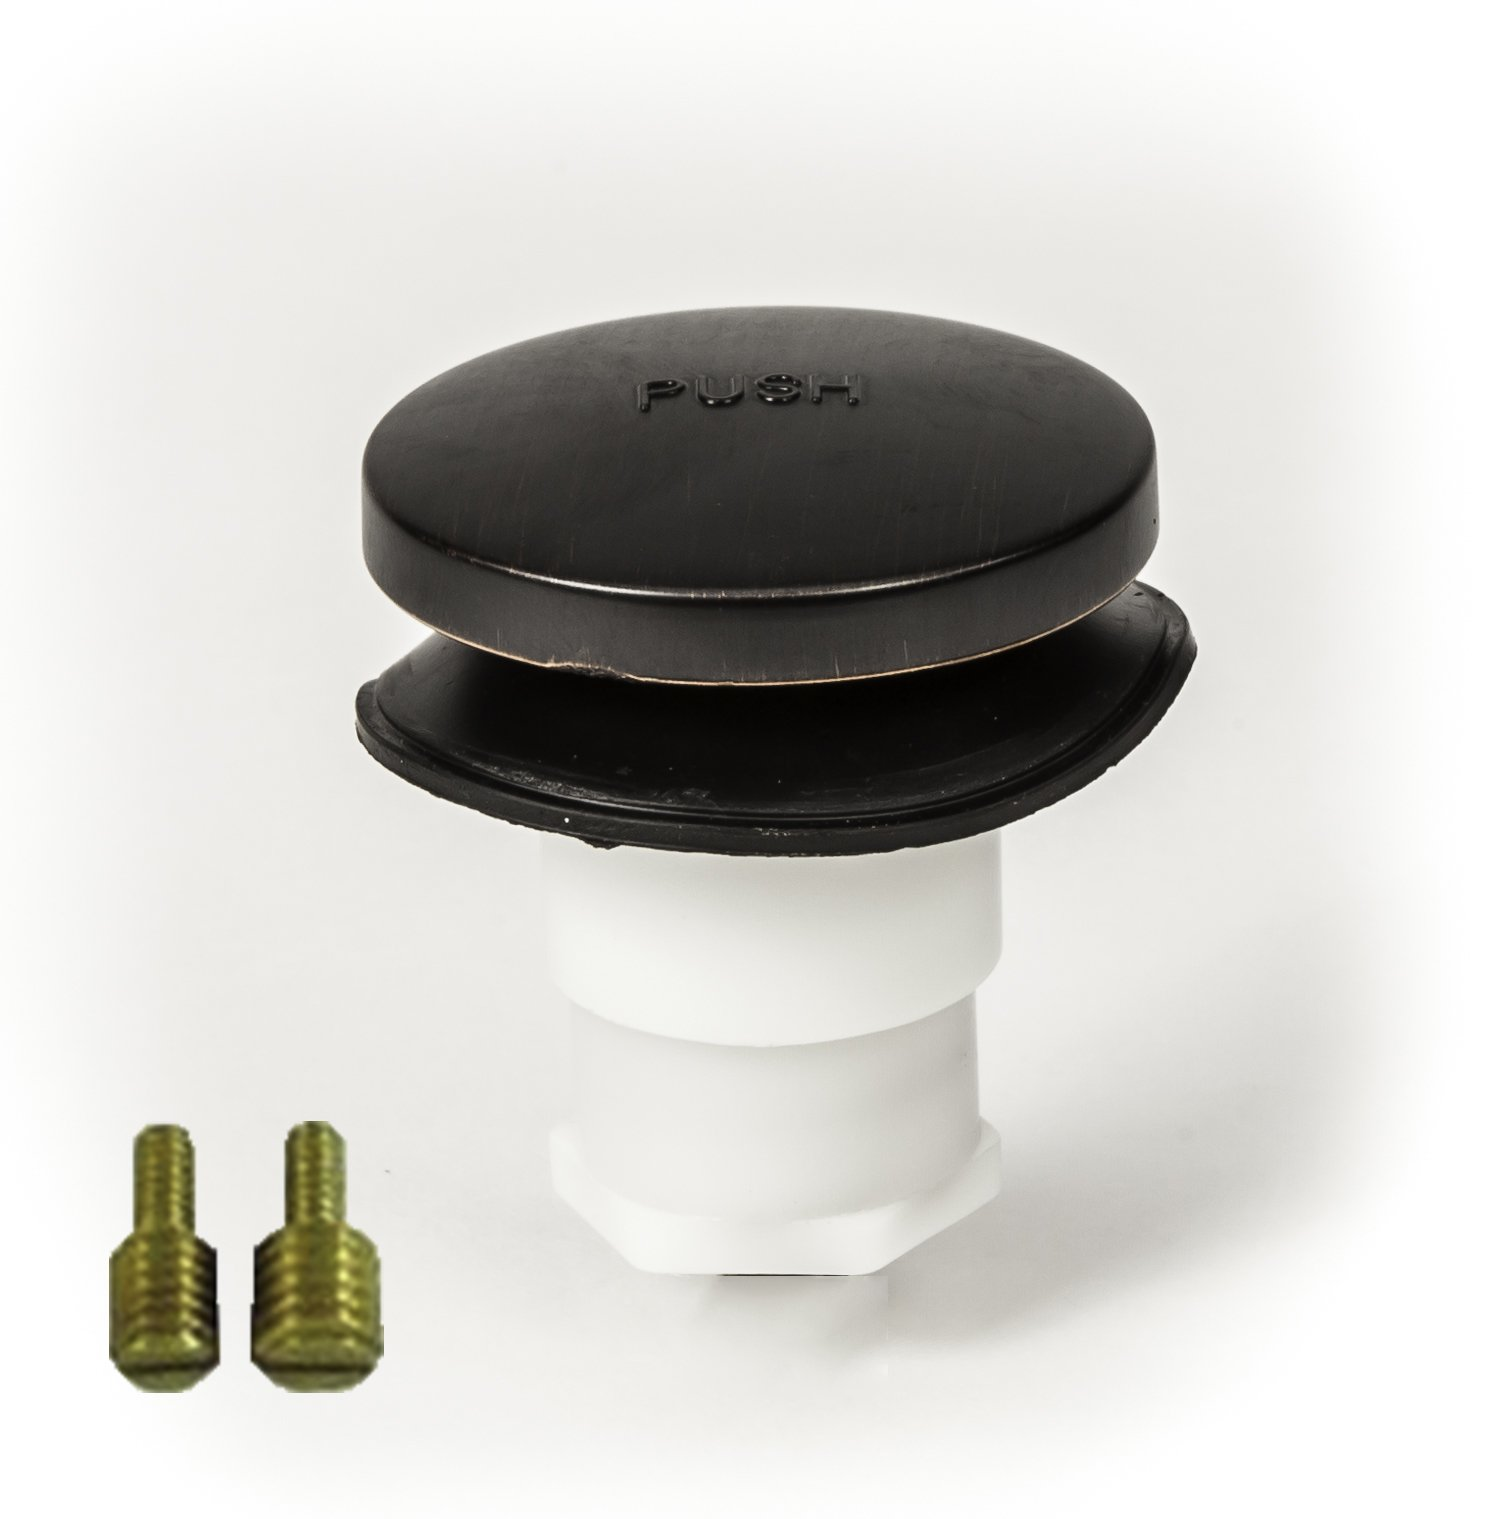 PF WaterWorks Universal Toe Touch (Tip Toe or Foot Actuated) Bathtub/Bath Tub Drain Stopper includes 3/8'' and 5/16'' Fittings; Oil Rubbed Bronze; PF0935-ORB-TT-S by PF WaterWorks